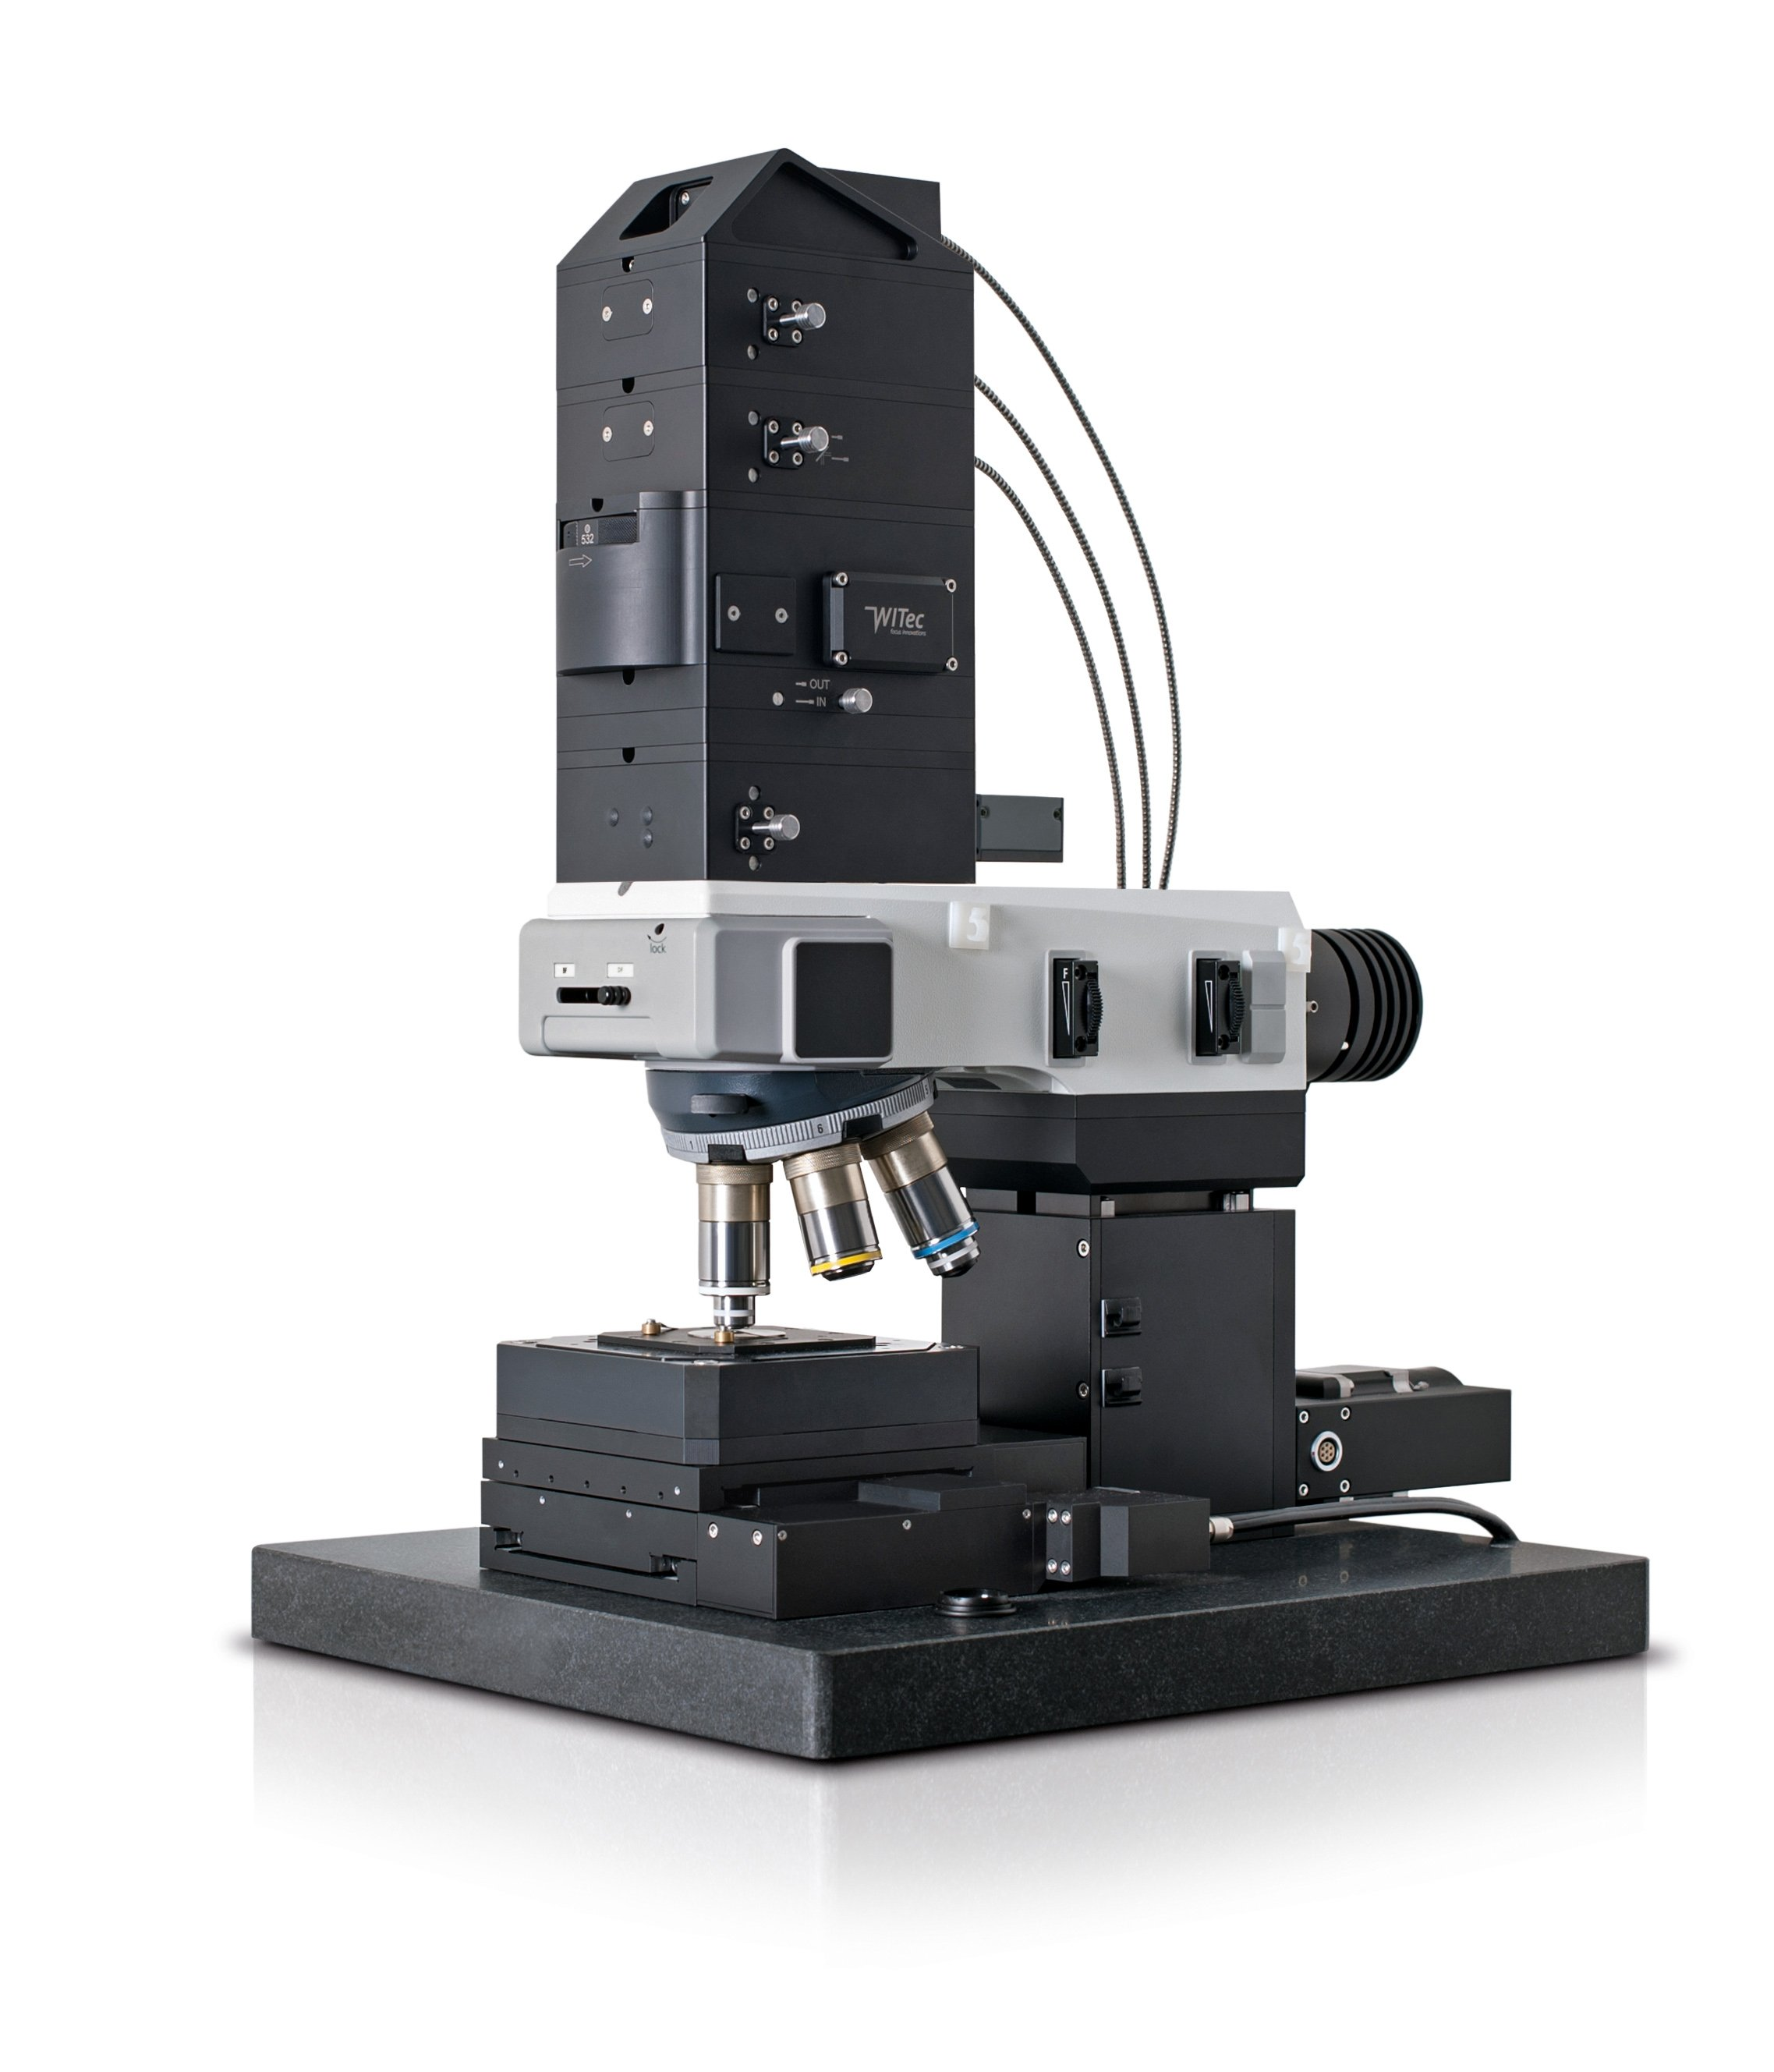 alpha300 R Confocal Raman Imaging Microscope by WITec GmbH thumbnail